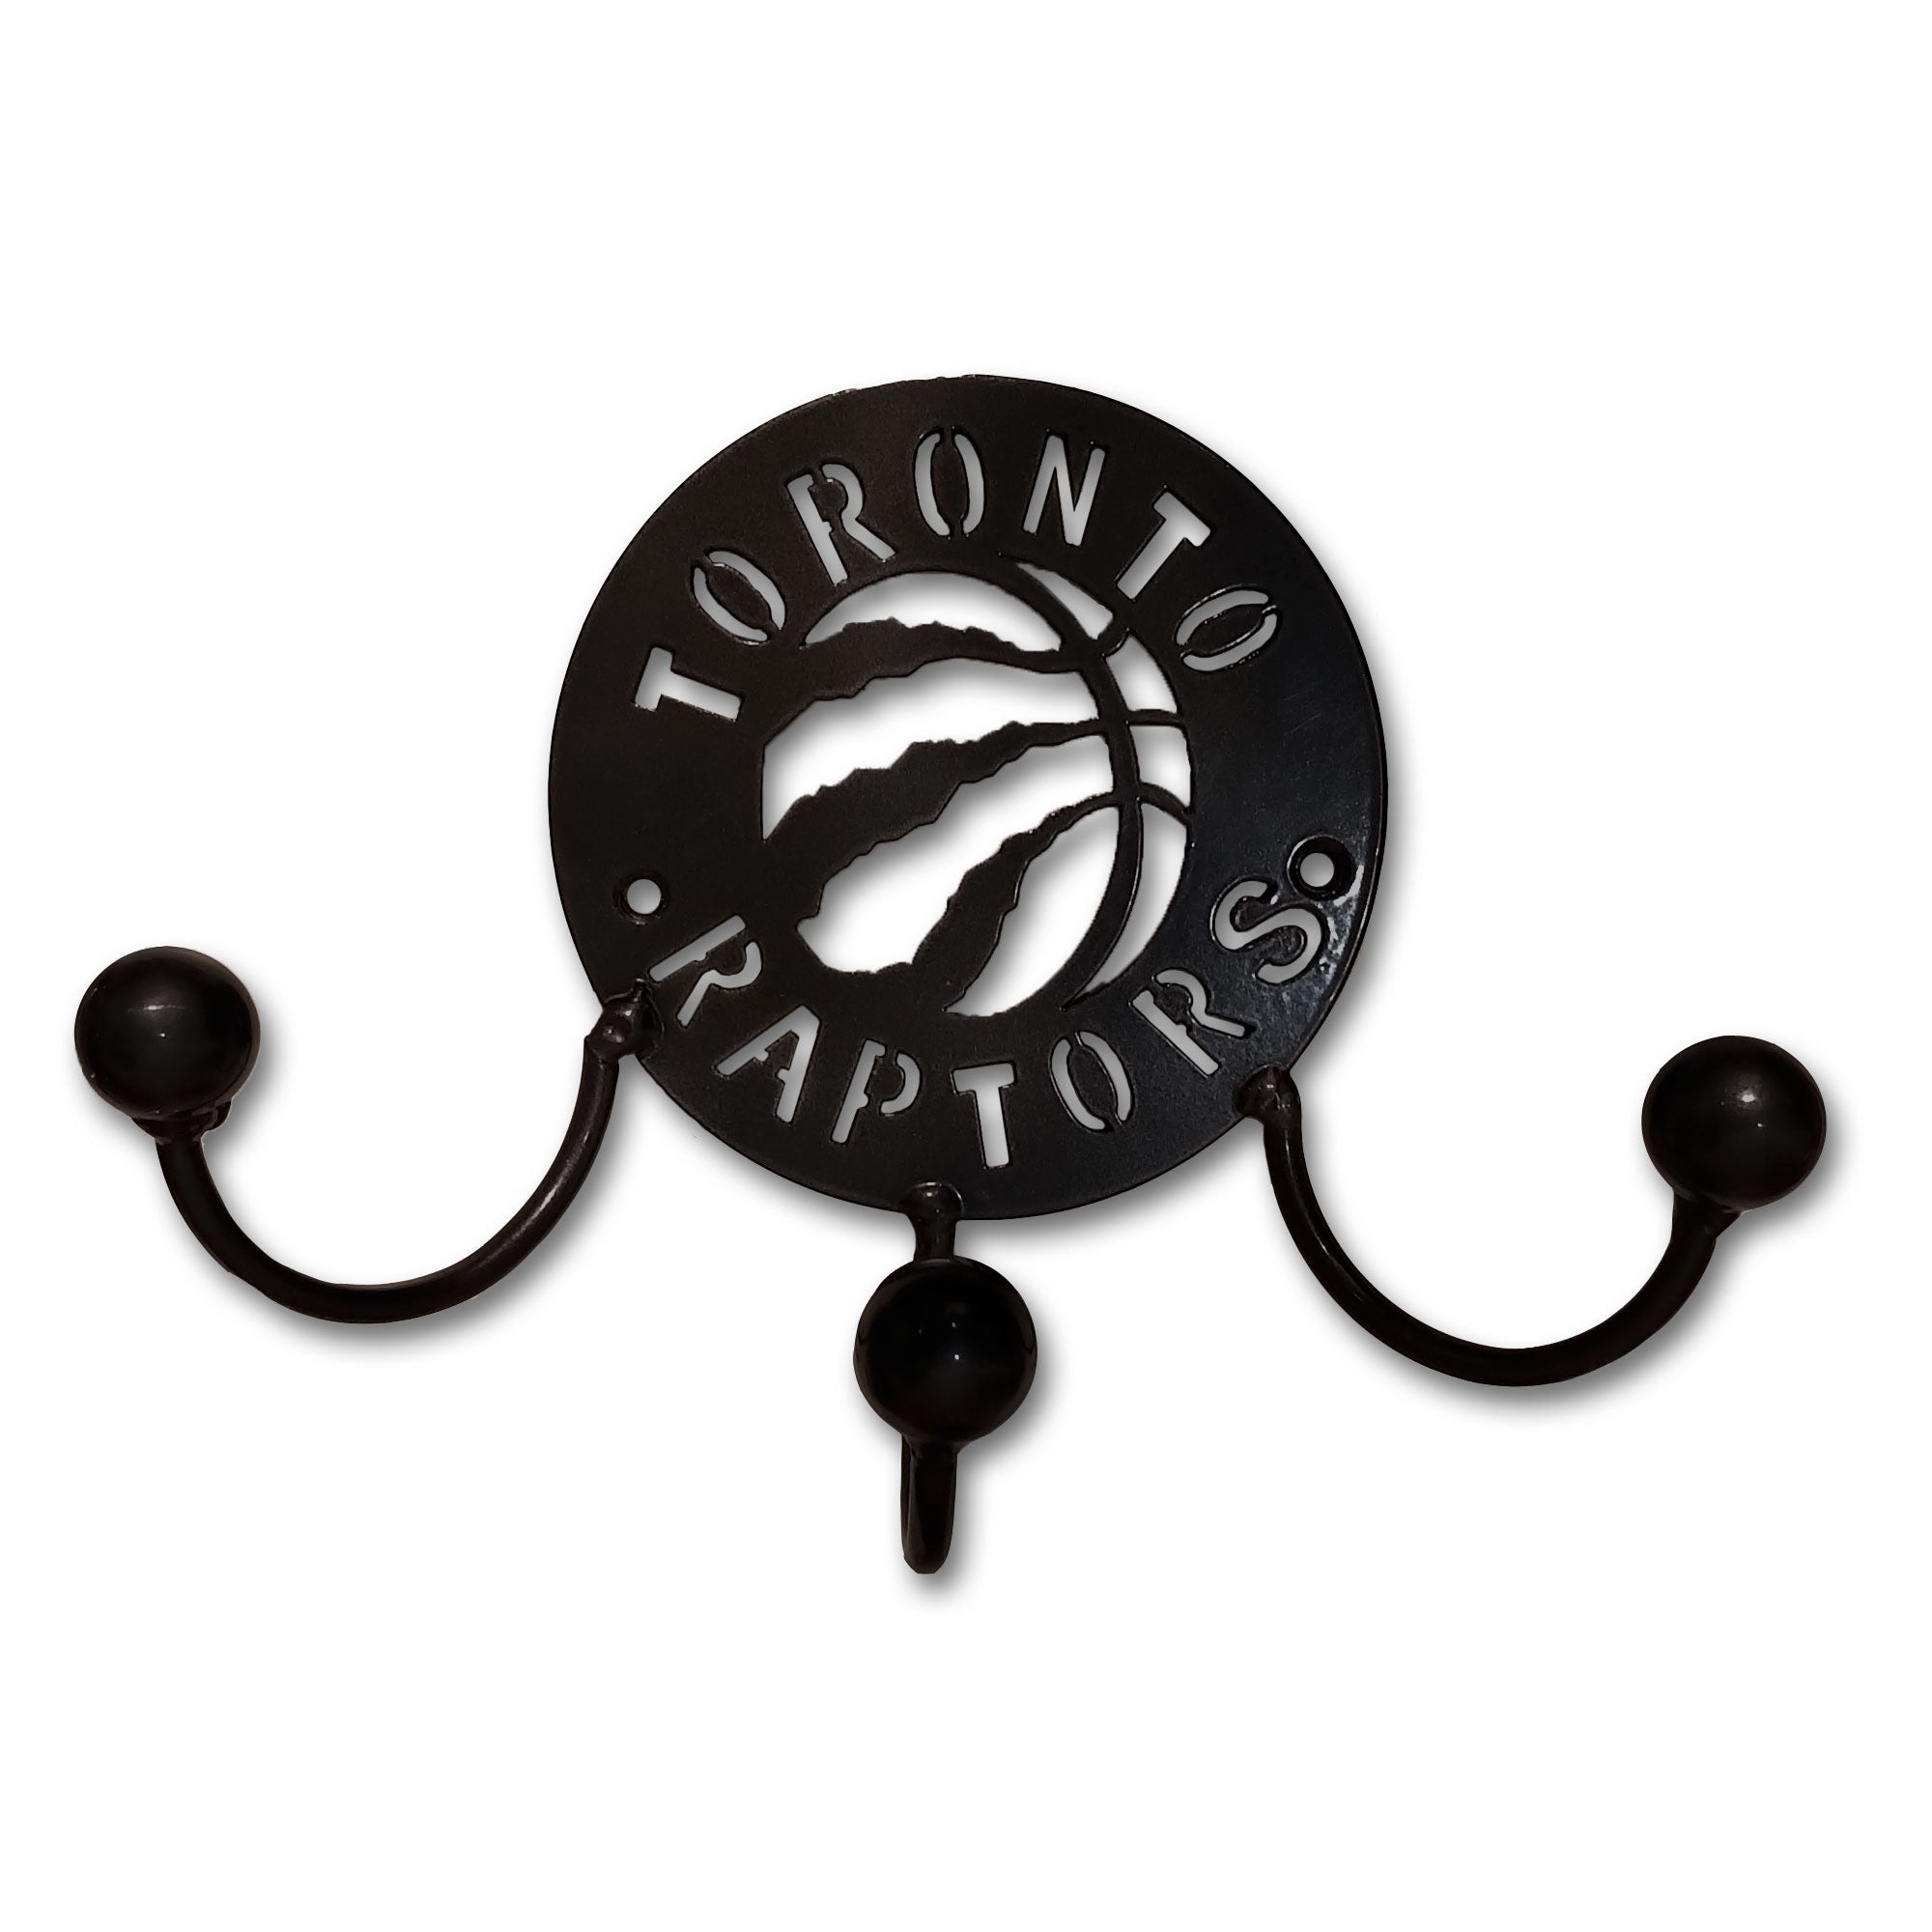 Toronto Raptors Basketball Home Decor Award Displays Hooks